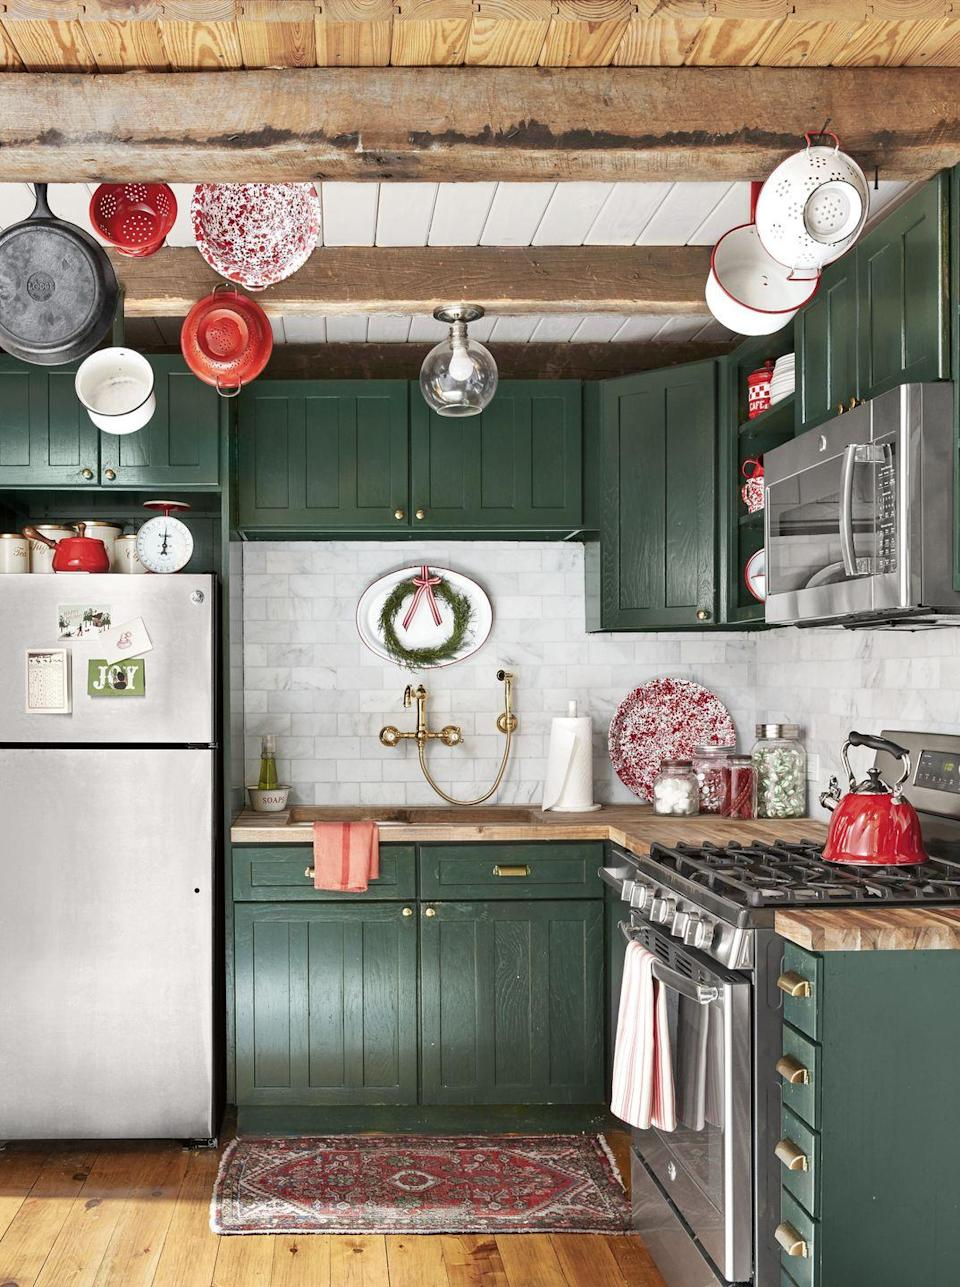 """<p>It never hurts to take color cues from the great outdoors—especially when you've got views of rolling hills, pretty pastures, and trees galore. In this small kitchen, cabinets in <a href=""""https://www.sherwin-williams.com/homeowners/color/find-and-explore-colors/paint-colors-by-family/SW6216-jasper"""" rel=""""nofollow noopener"""" target=""""_blank"""" data-ylk=""""slk:Jasper by Sherwin-Williams"""" class=""""link rapid-noclick-resp"""">Jasper by Sherwin-Williams</a> positively pop against white tile, exposed beams, and beautiful wood floors. <br></p>"""